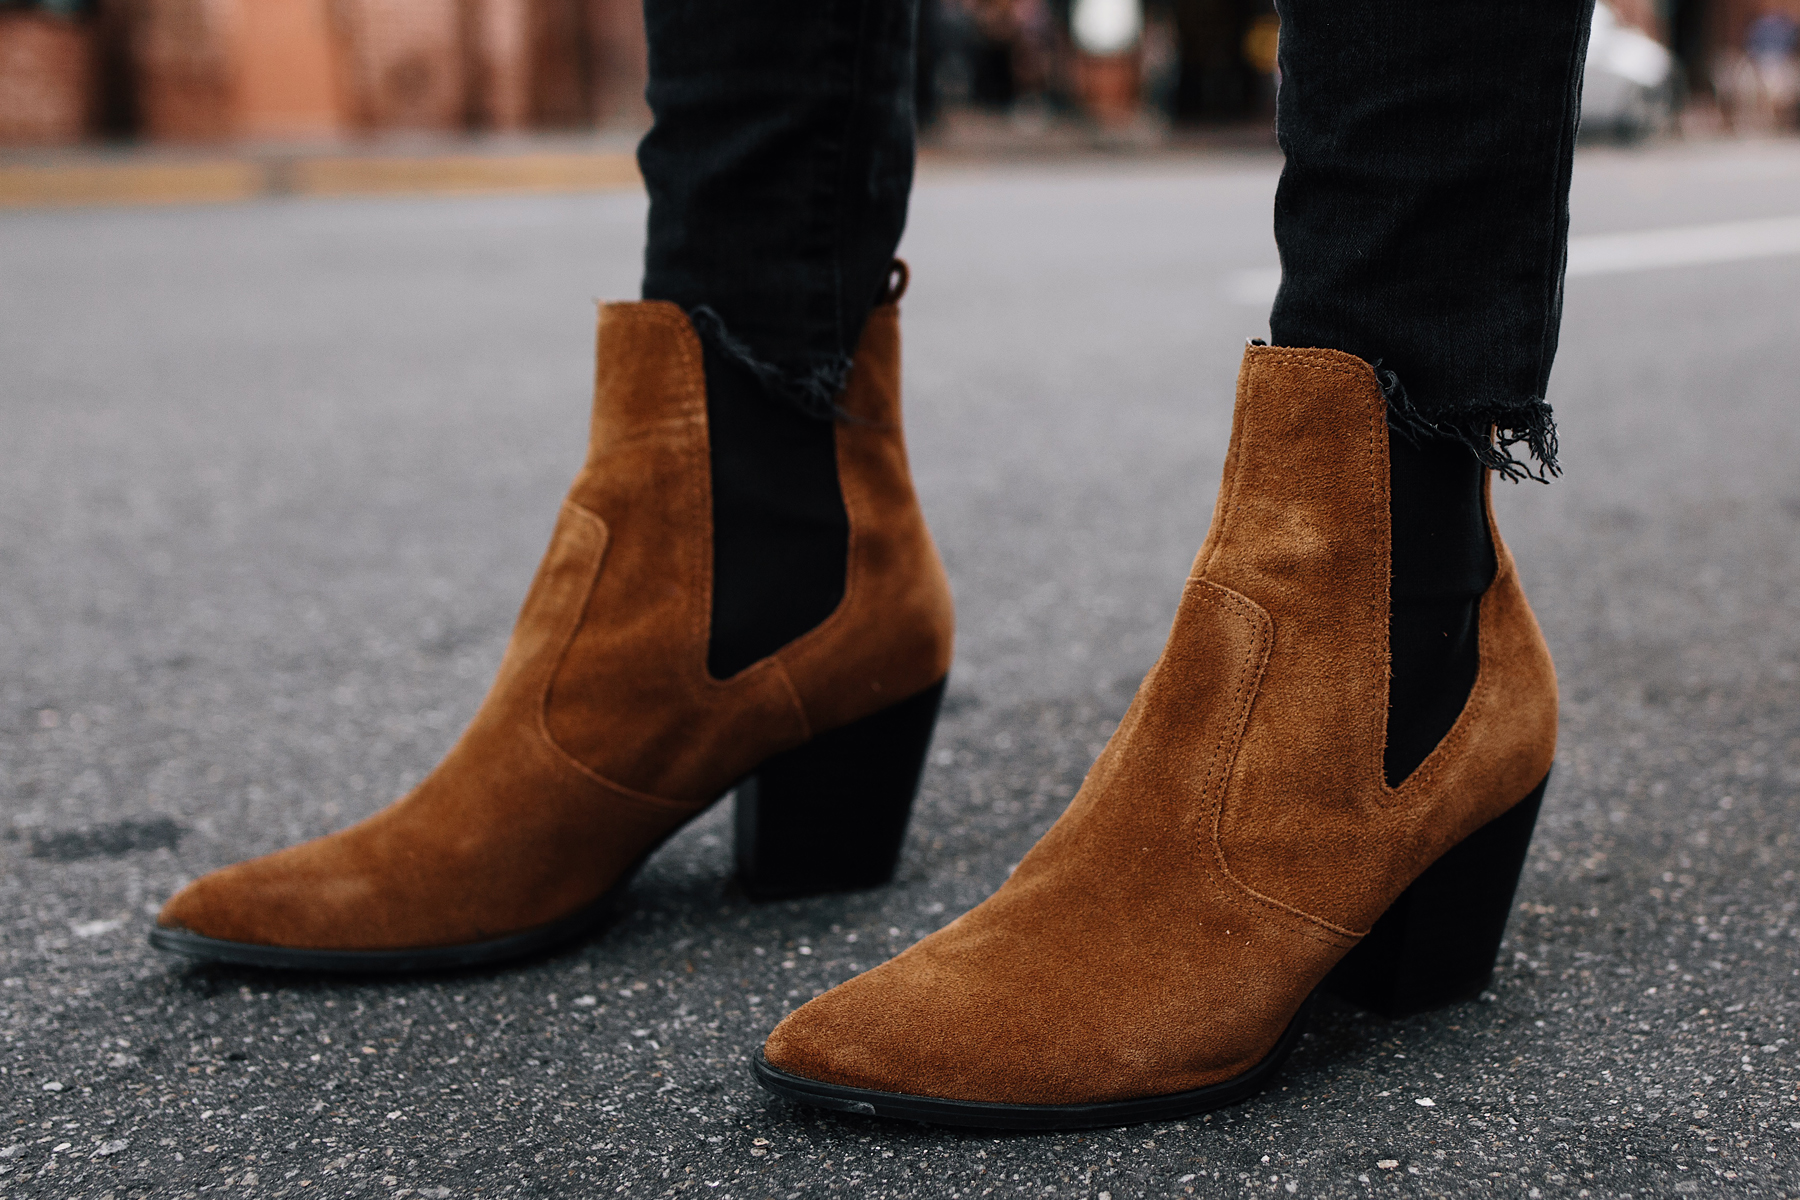 Woman Wearing Wearing Steve Madden Tan Chelsea Booties Fashion Jackson San Diego Fashion Blogger Street Style